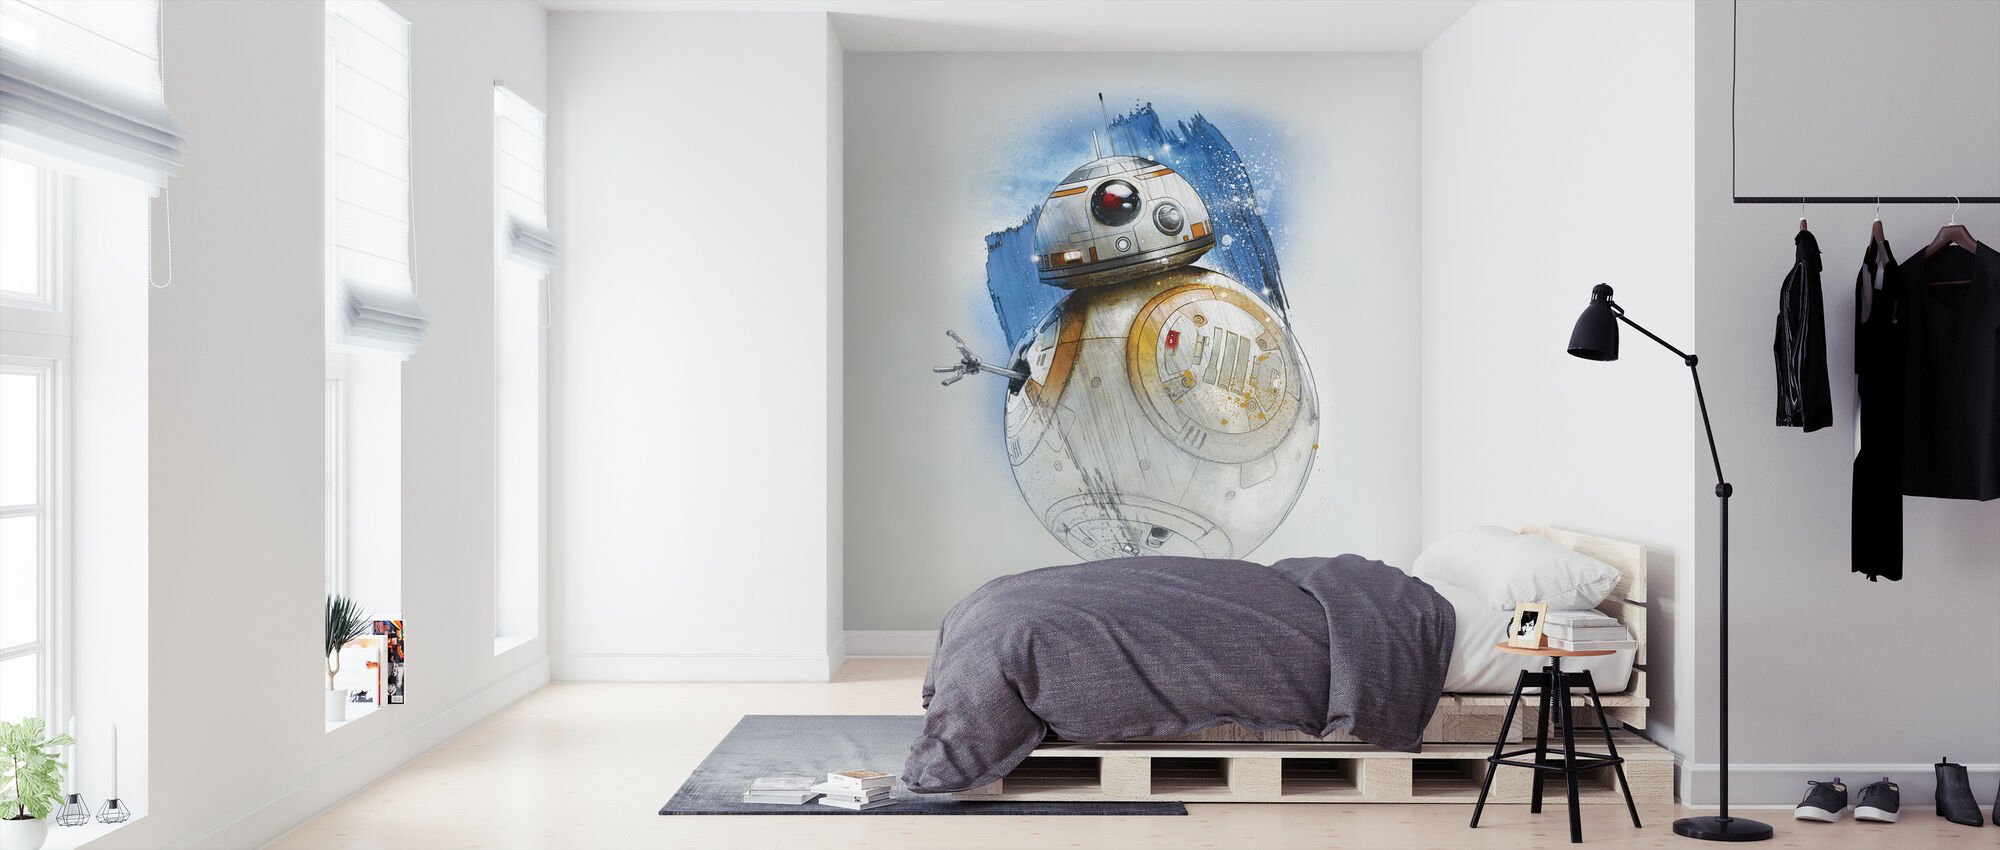 Star Wars - BB-8 penselstrøk - Tapet - Soverom